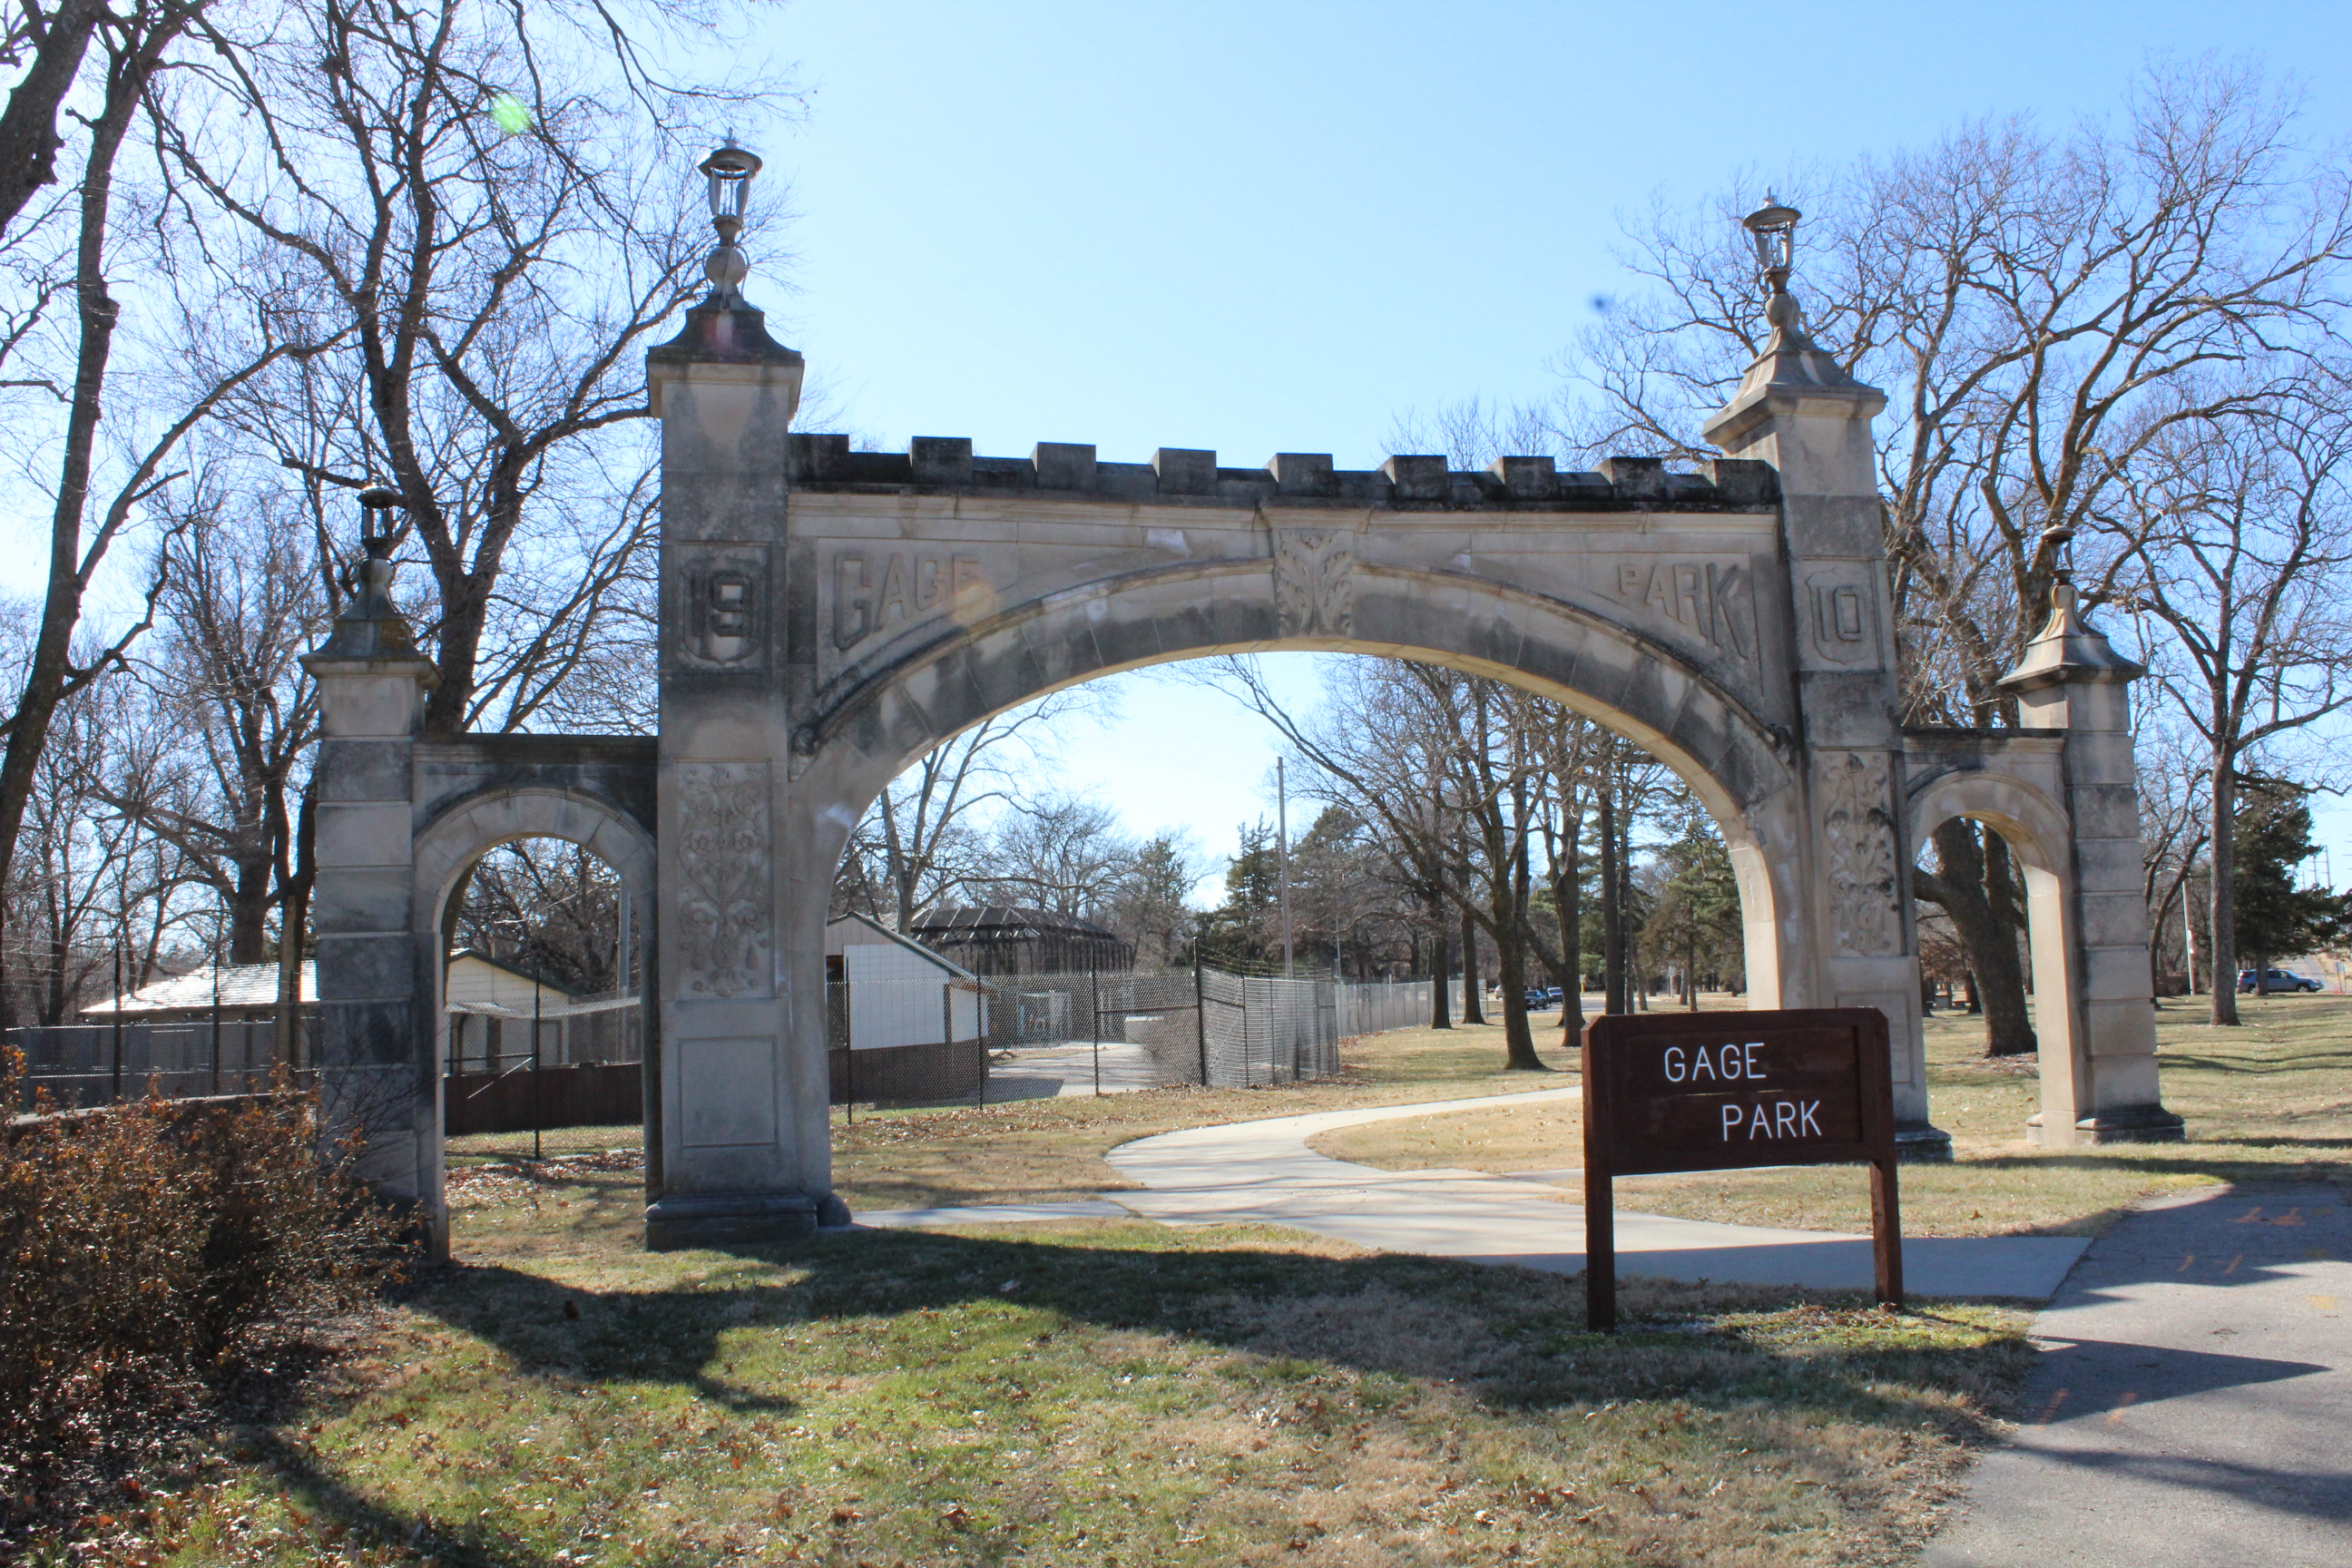 Gateway to Gage Park. This stone arched entrance was constructed in 1910. (Photo by J. Schafer)